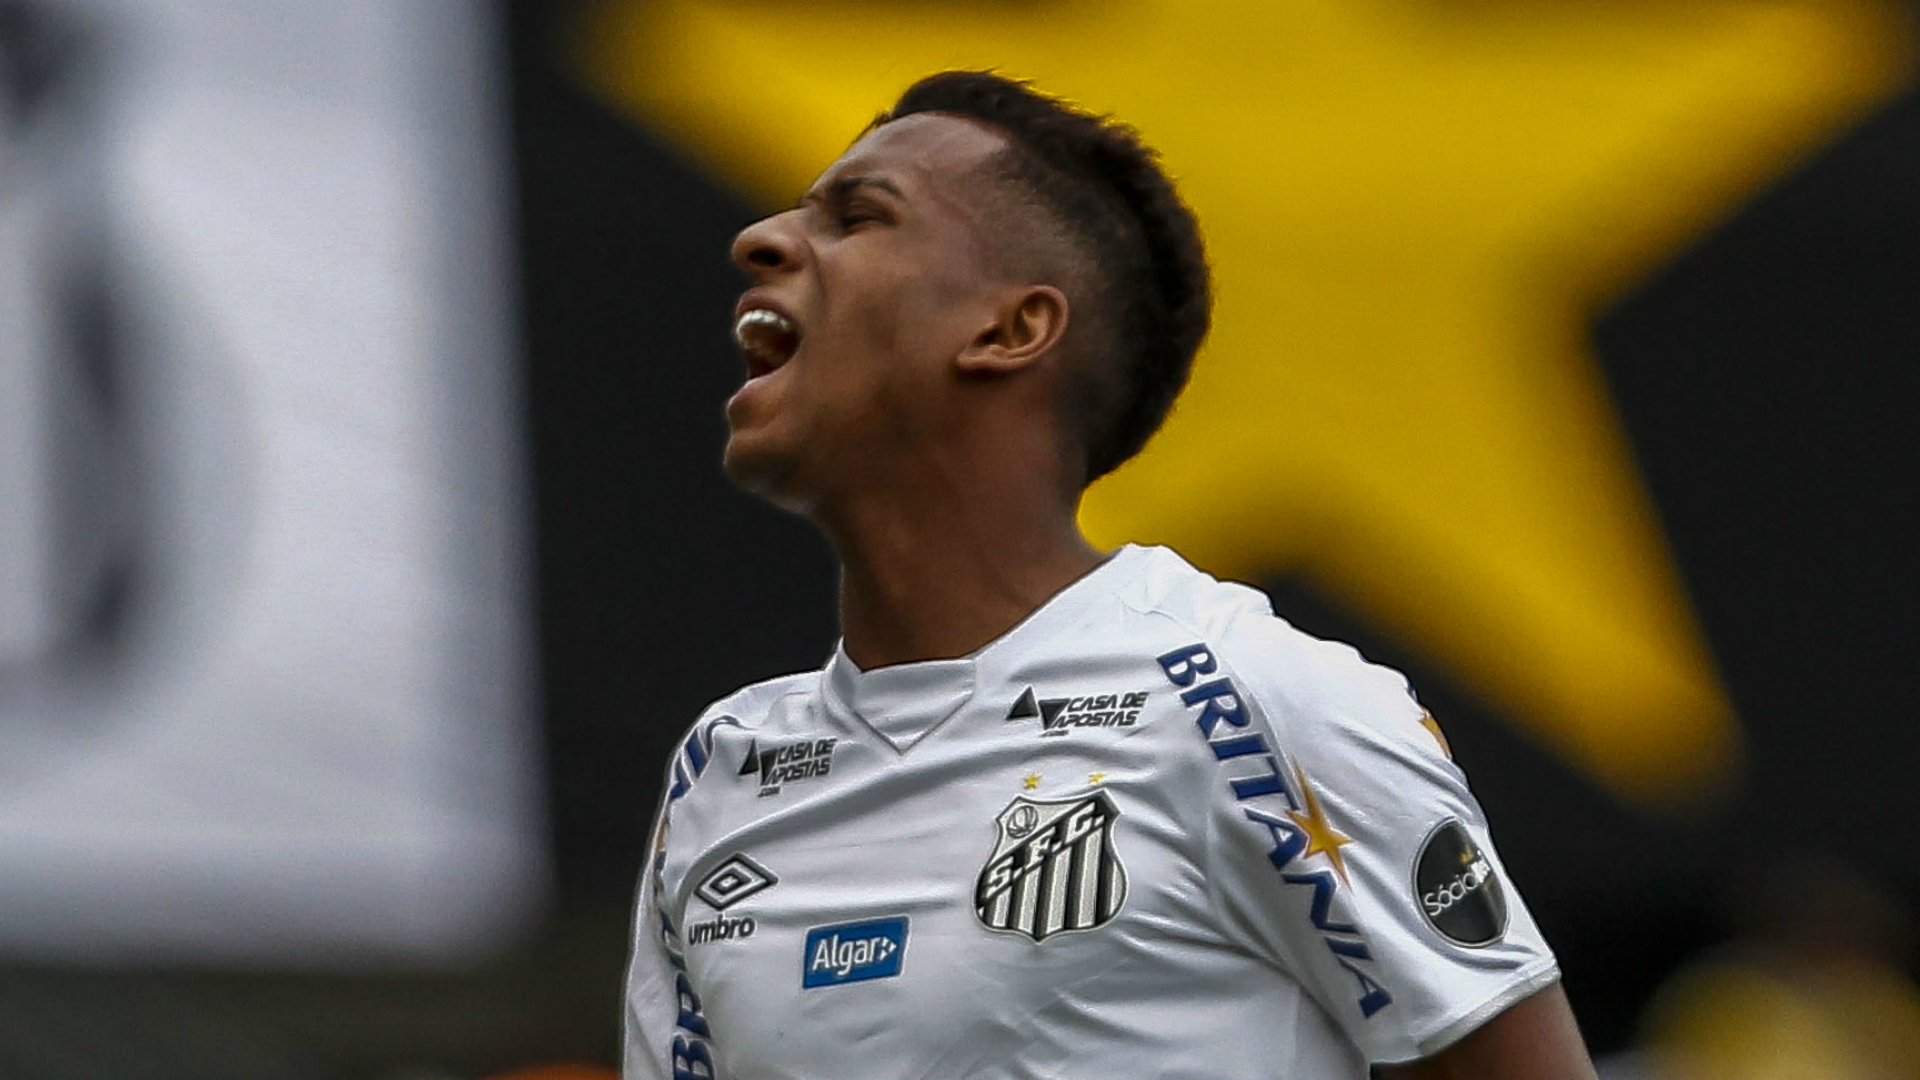 Real Madrid-bound Rodrygo Goes bids Santos emotional goodbye